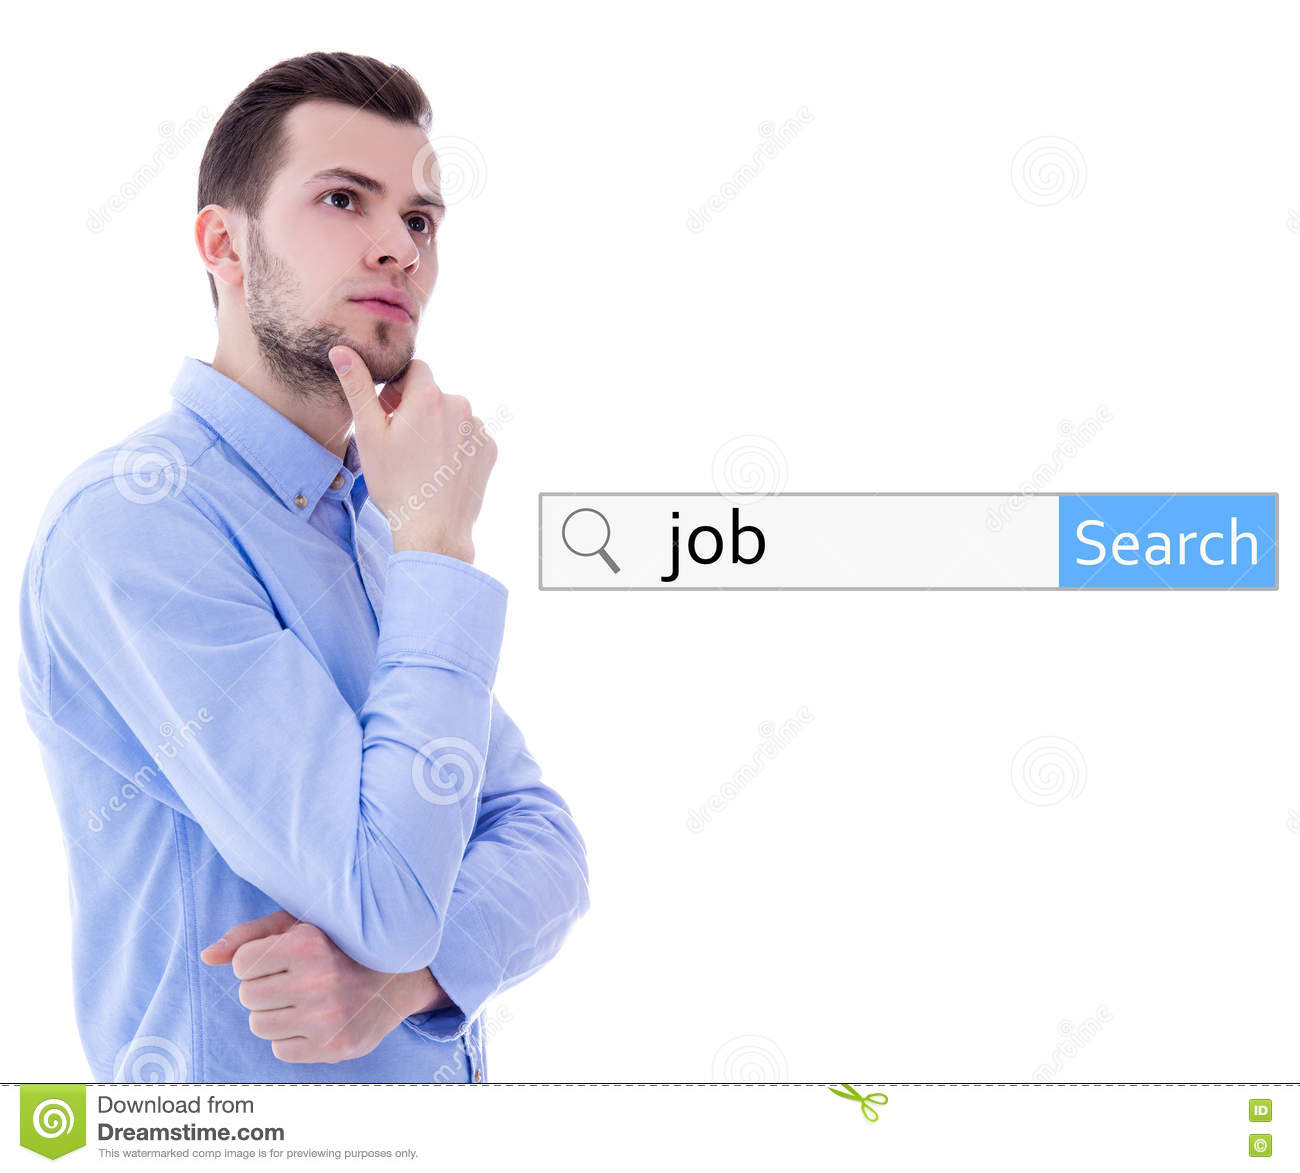 internet and job search concept search bar word job and y internet and job search concept search bar word job and y